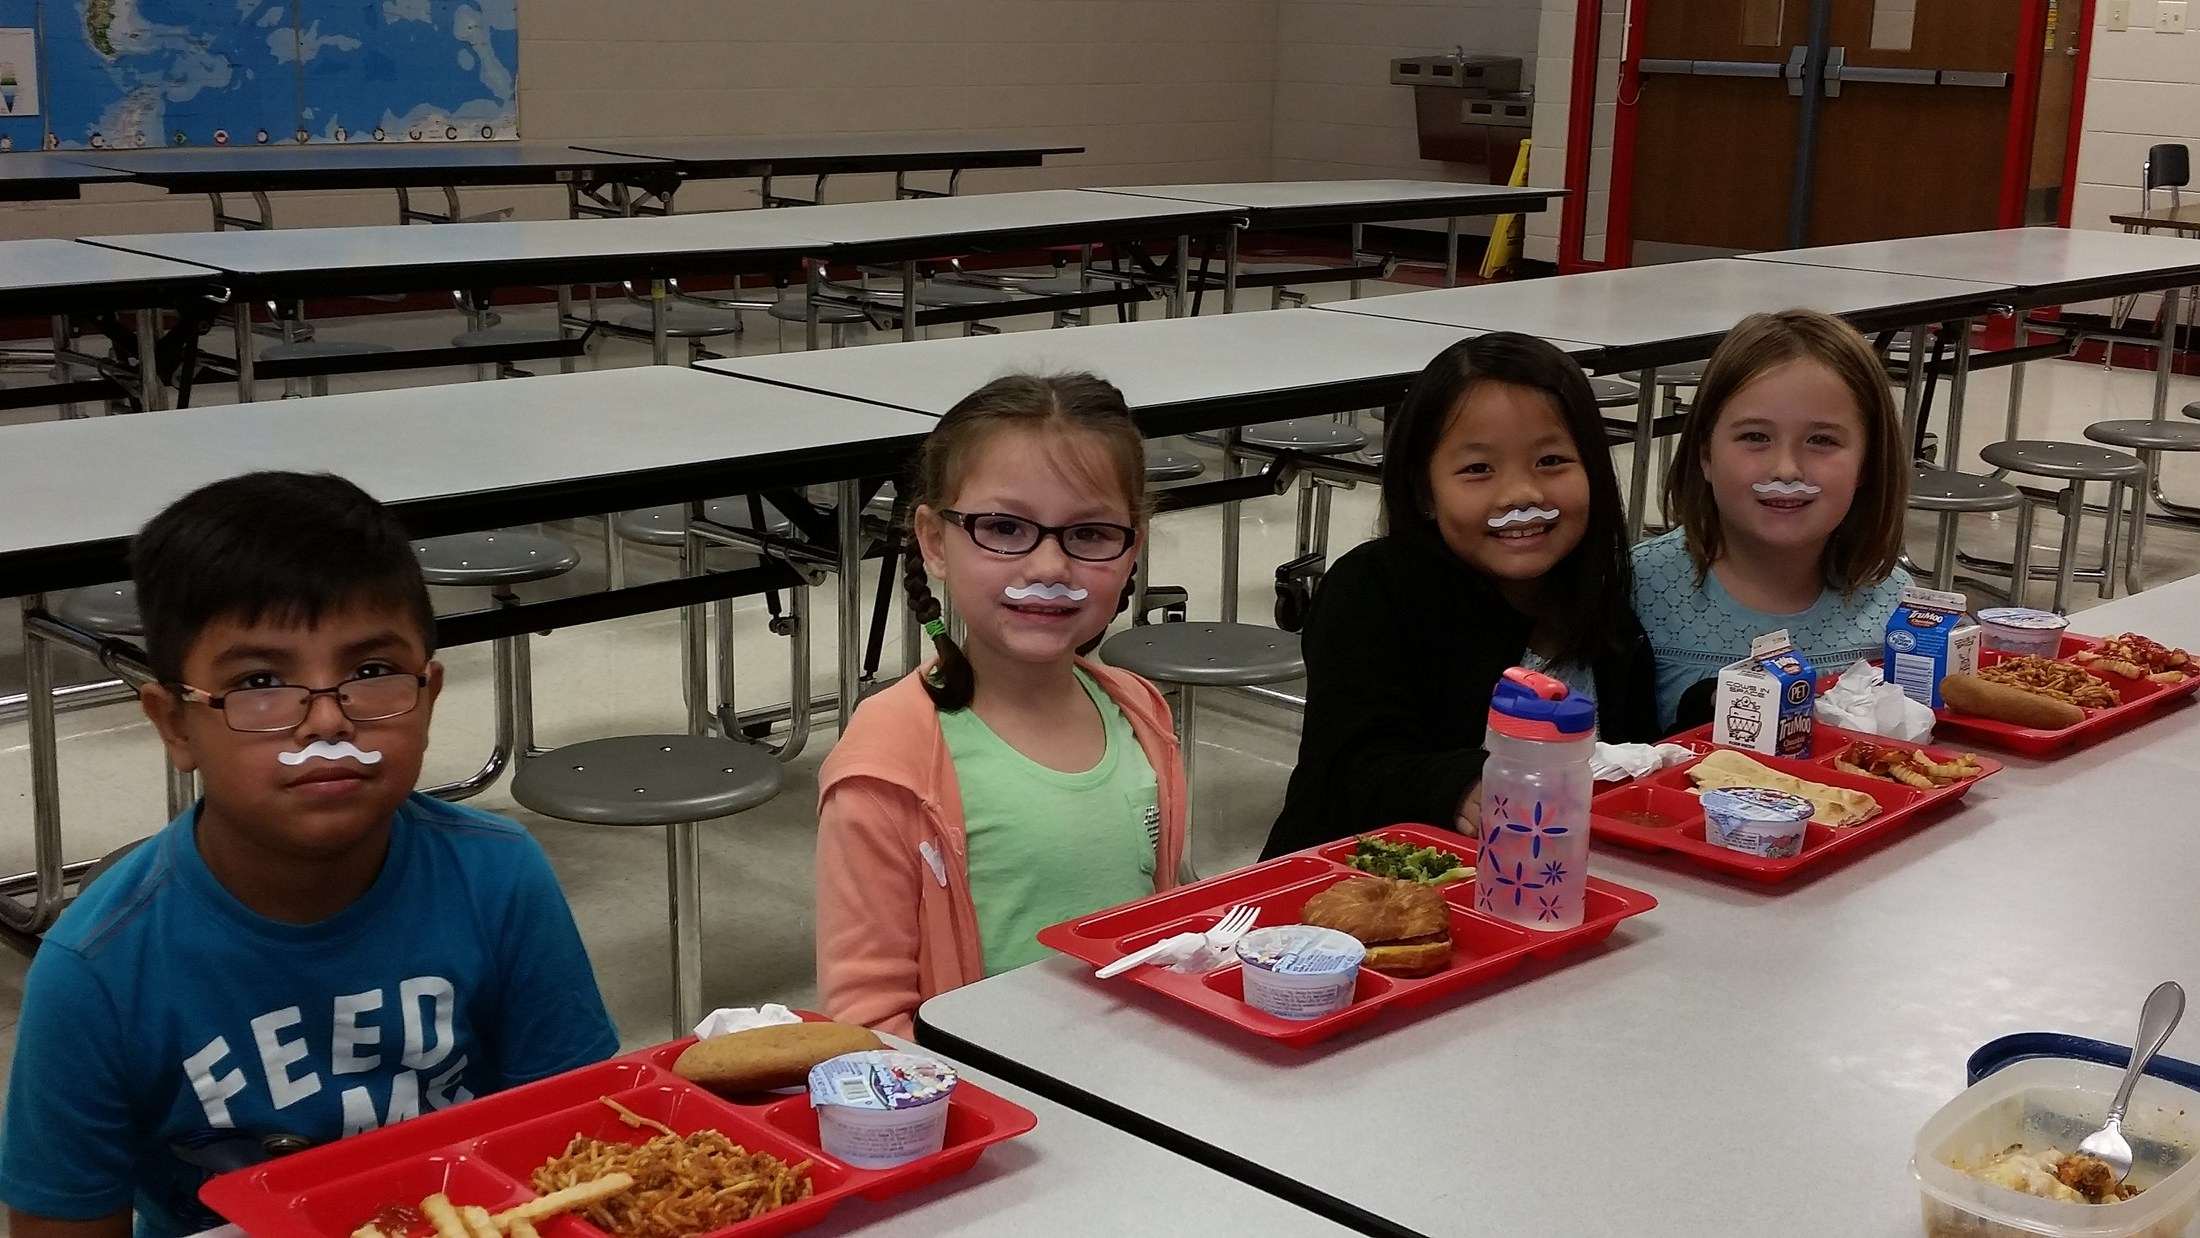 Students with their Milk Stache